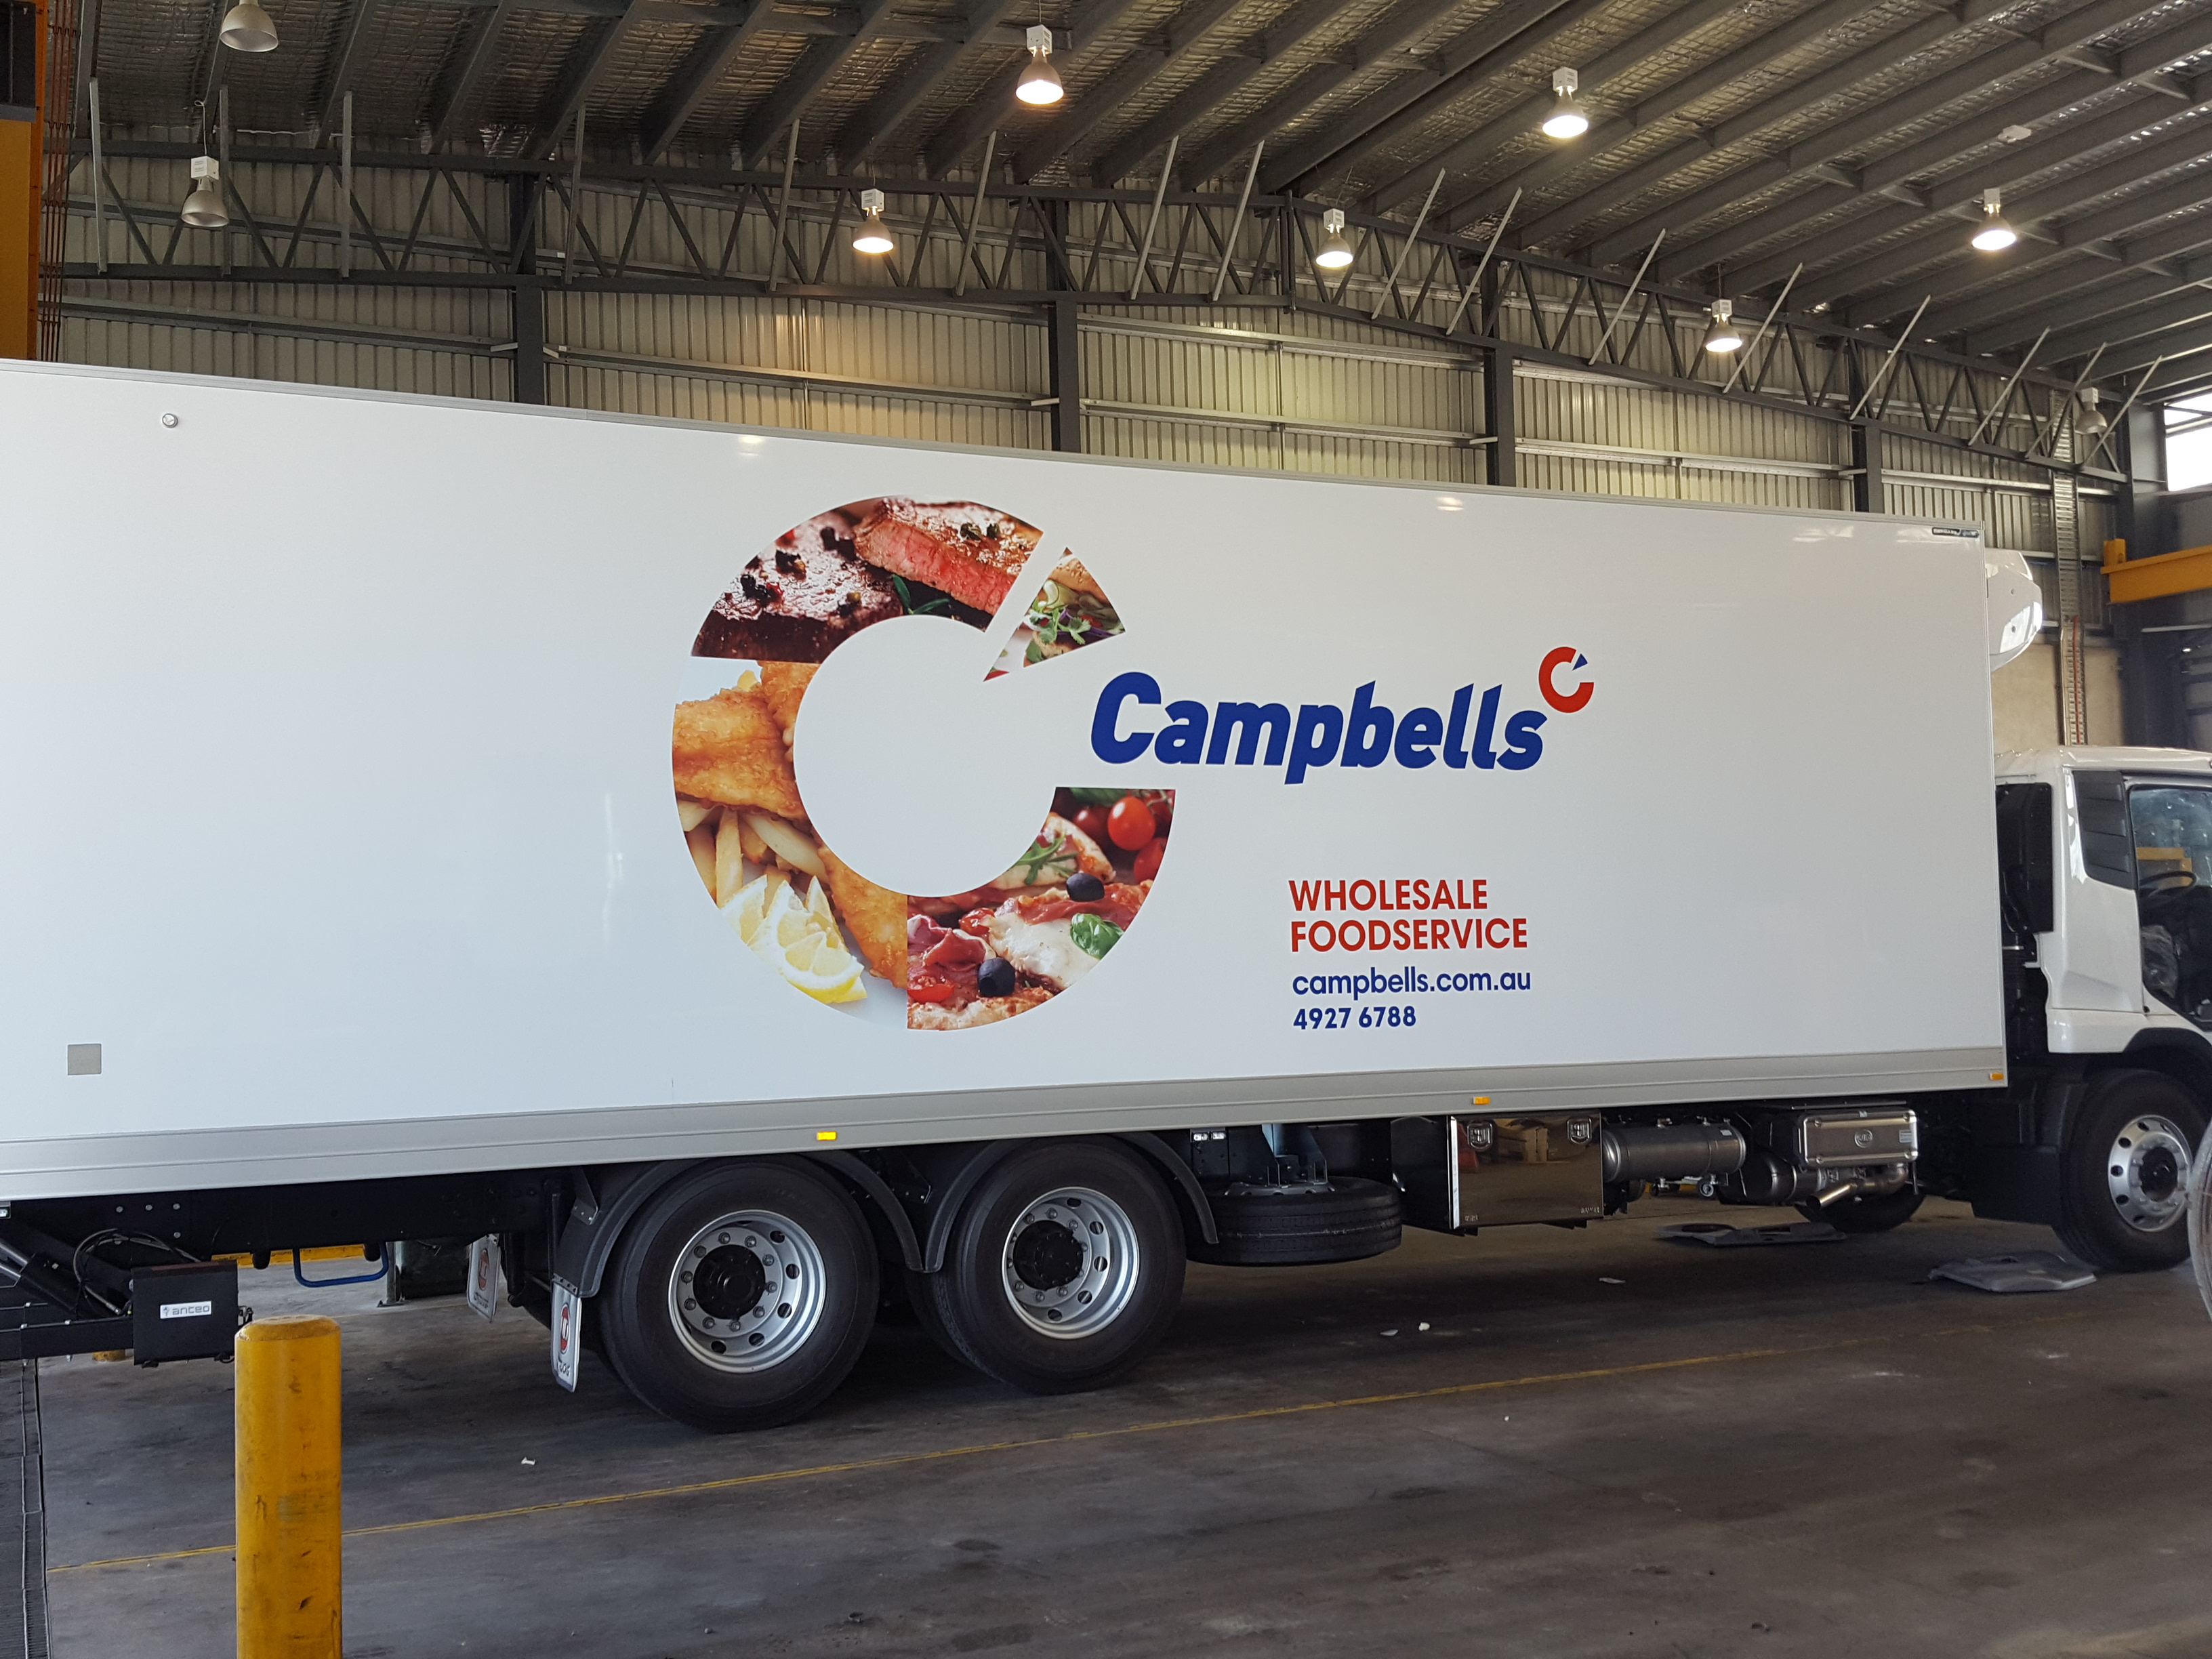 campbells wholesale food service truck with truckskinz advertising wrap application